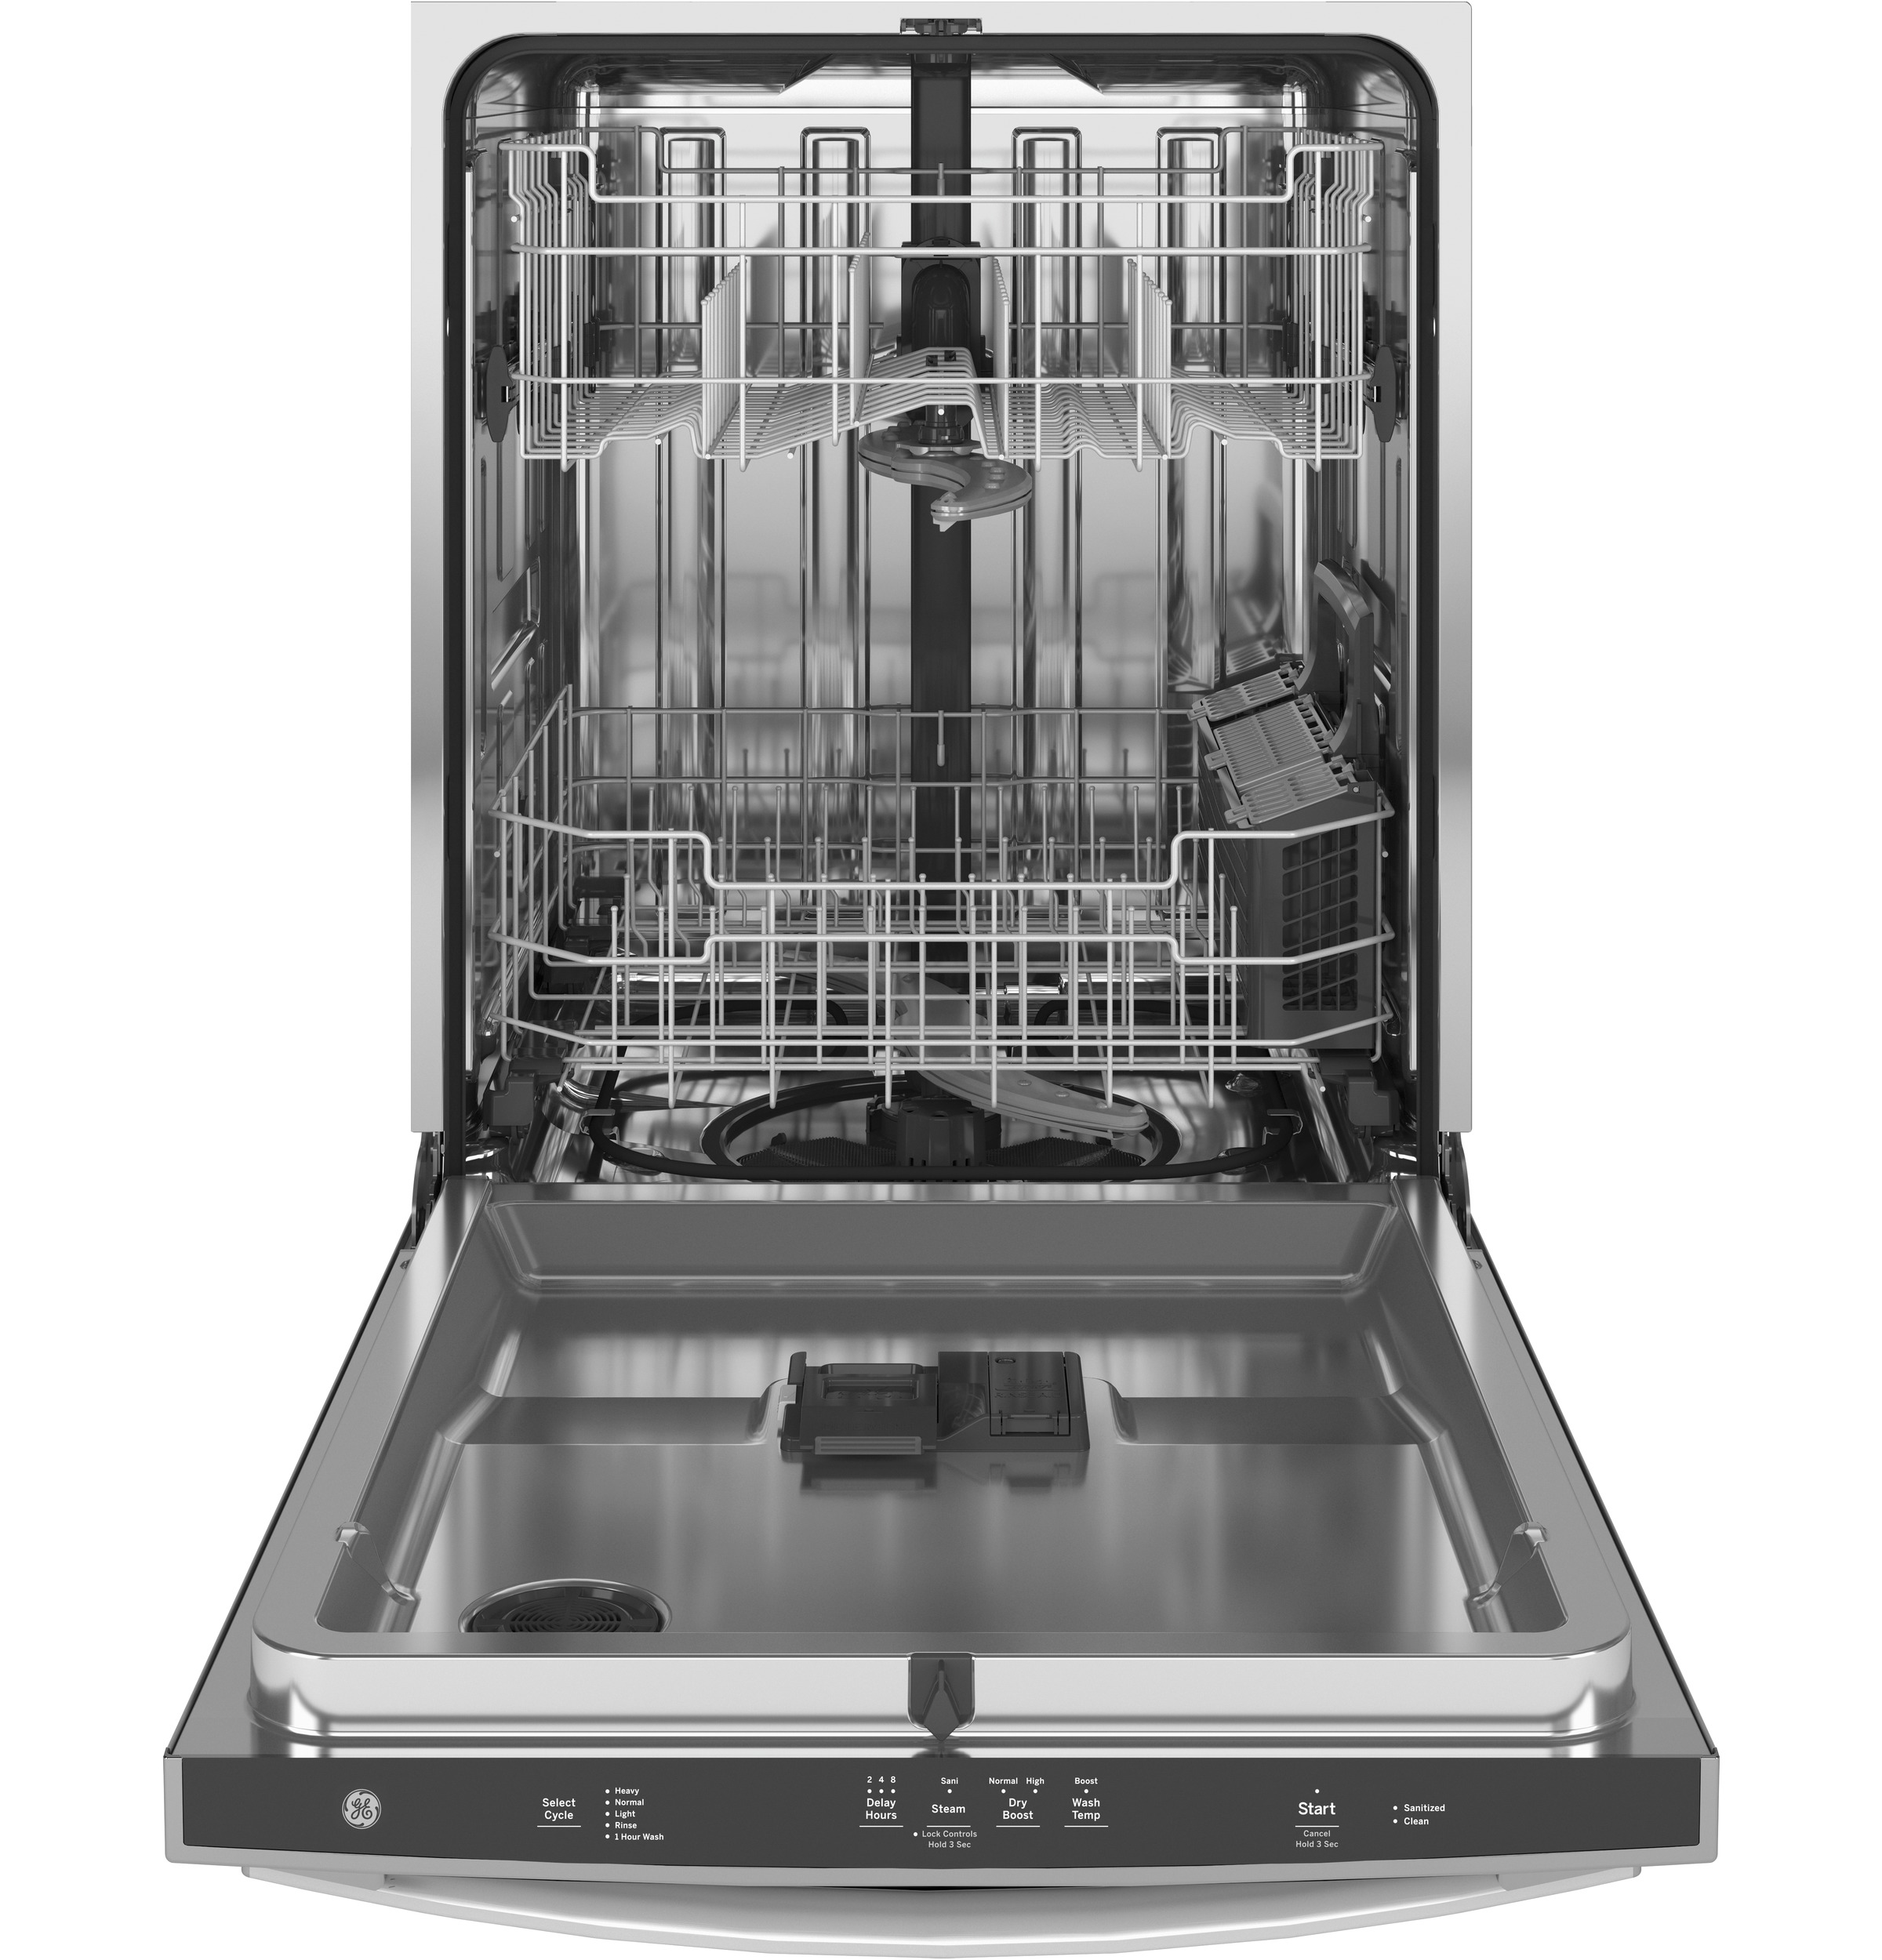 Model: GDT565SSNSS | GE GE® Stainless Steel Interior Dishwasher with Hidden Controls